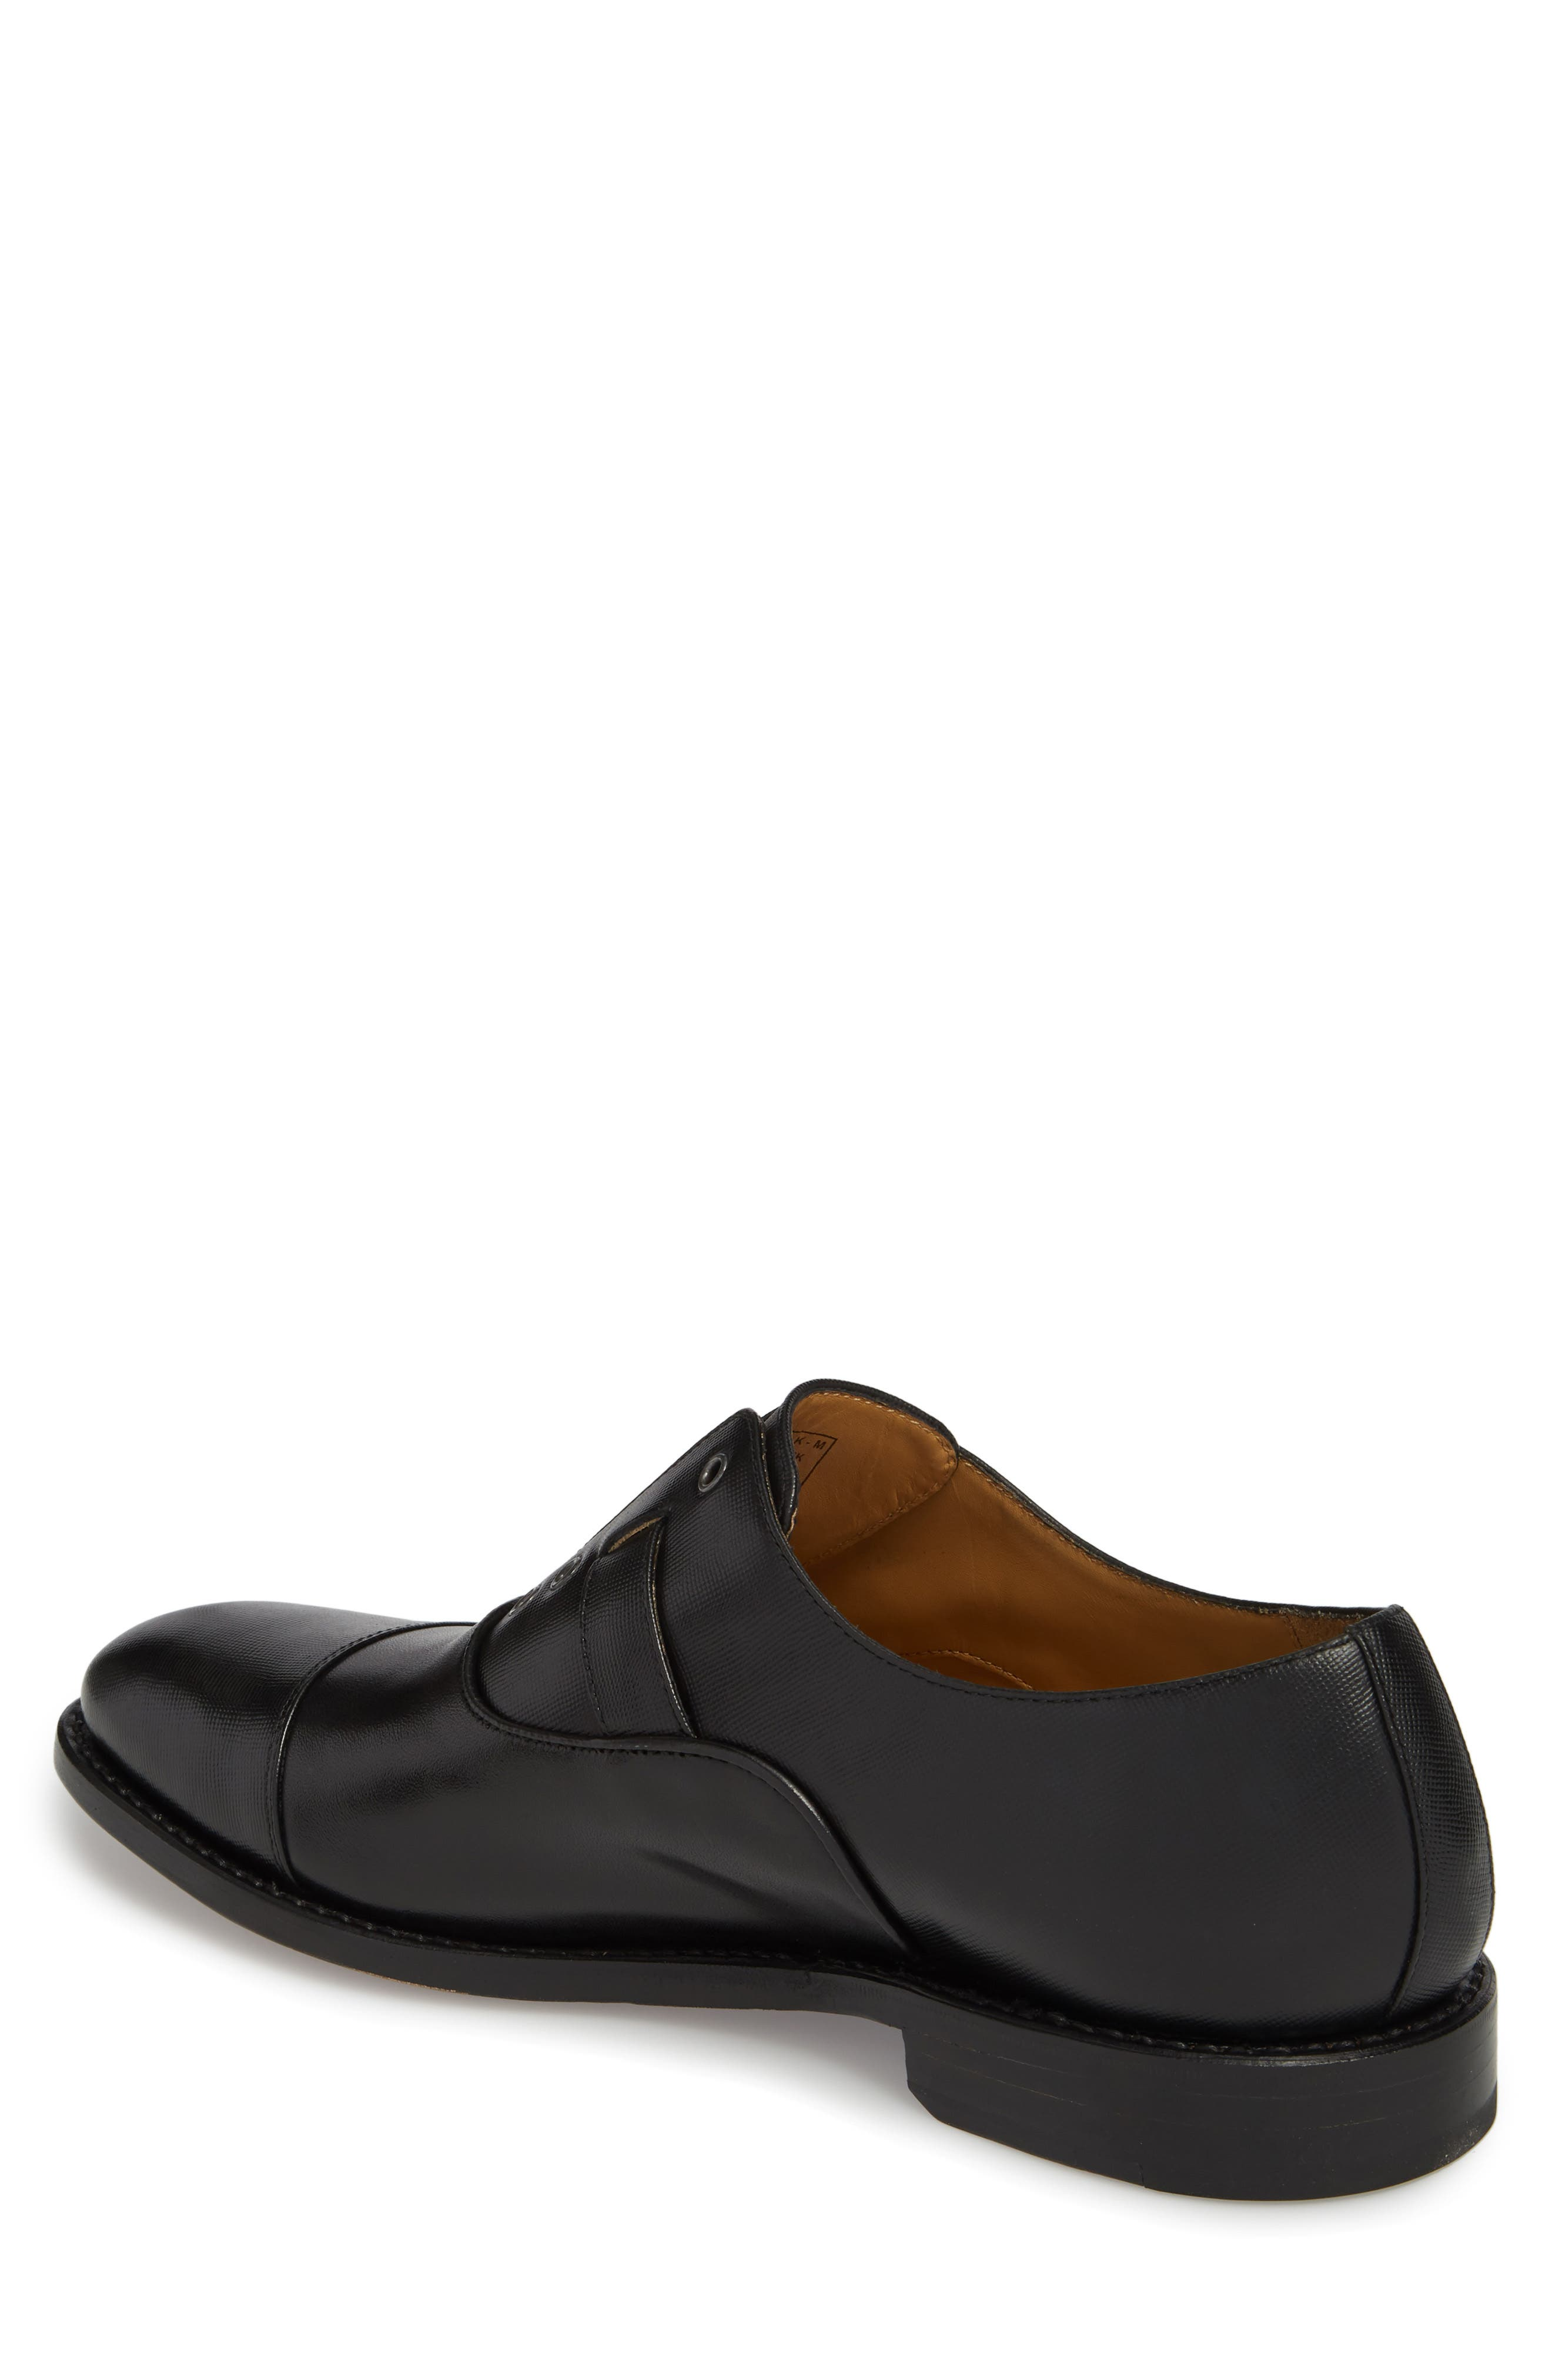 Brandon Cap Toe Oxford,                             Alternate thumbnail 2, color,                             001